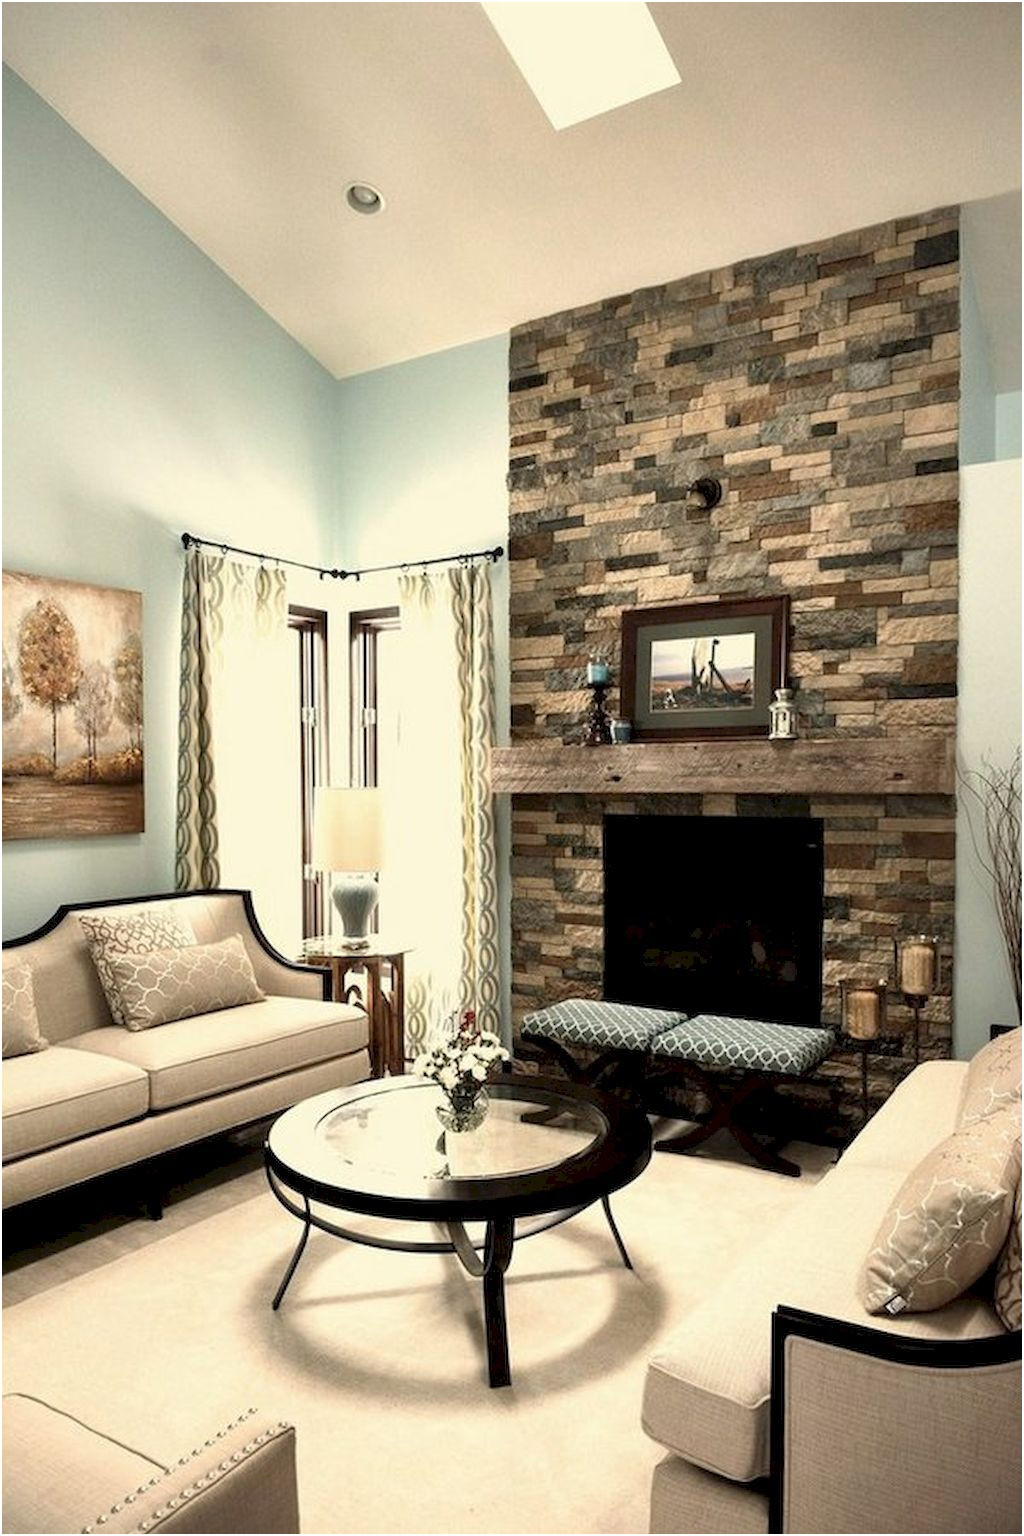 Best Of Ideas to Cover Fireplace